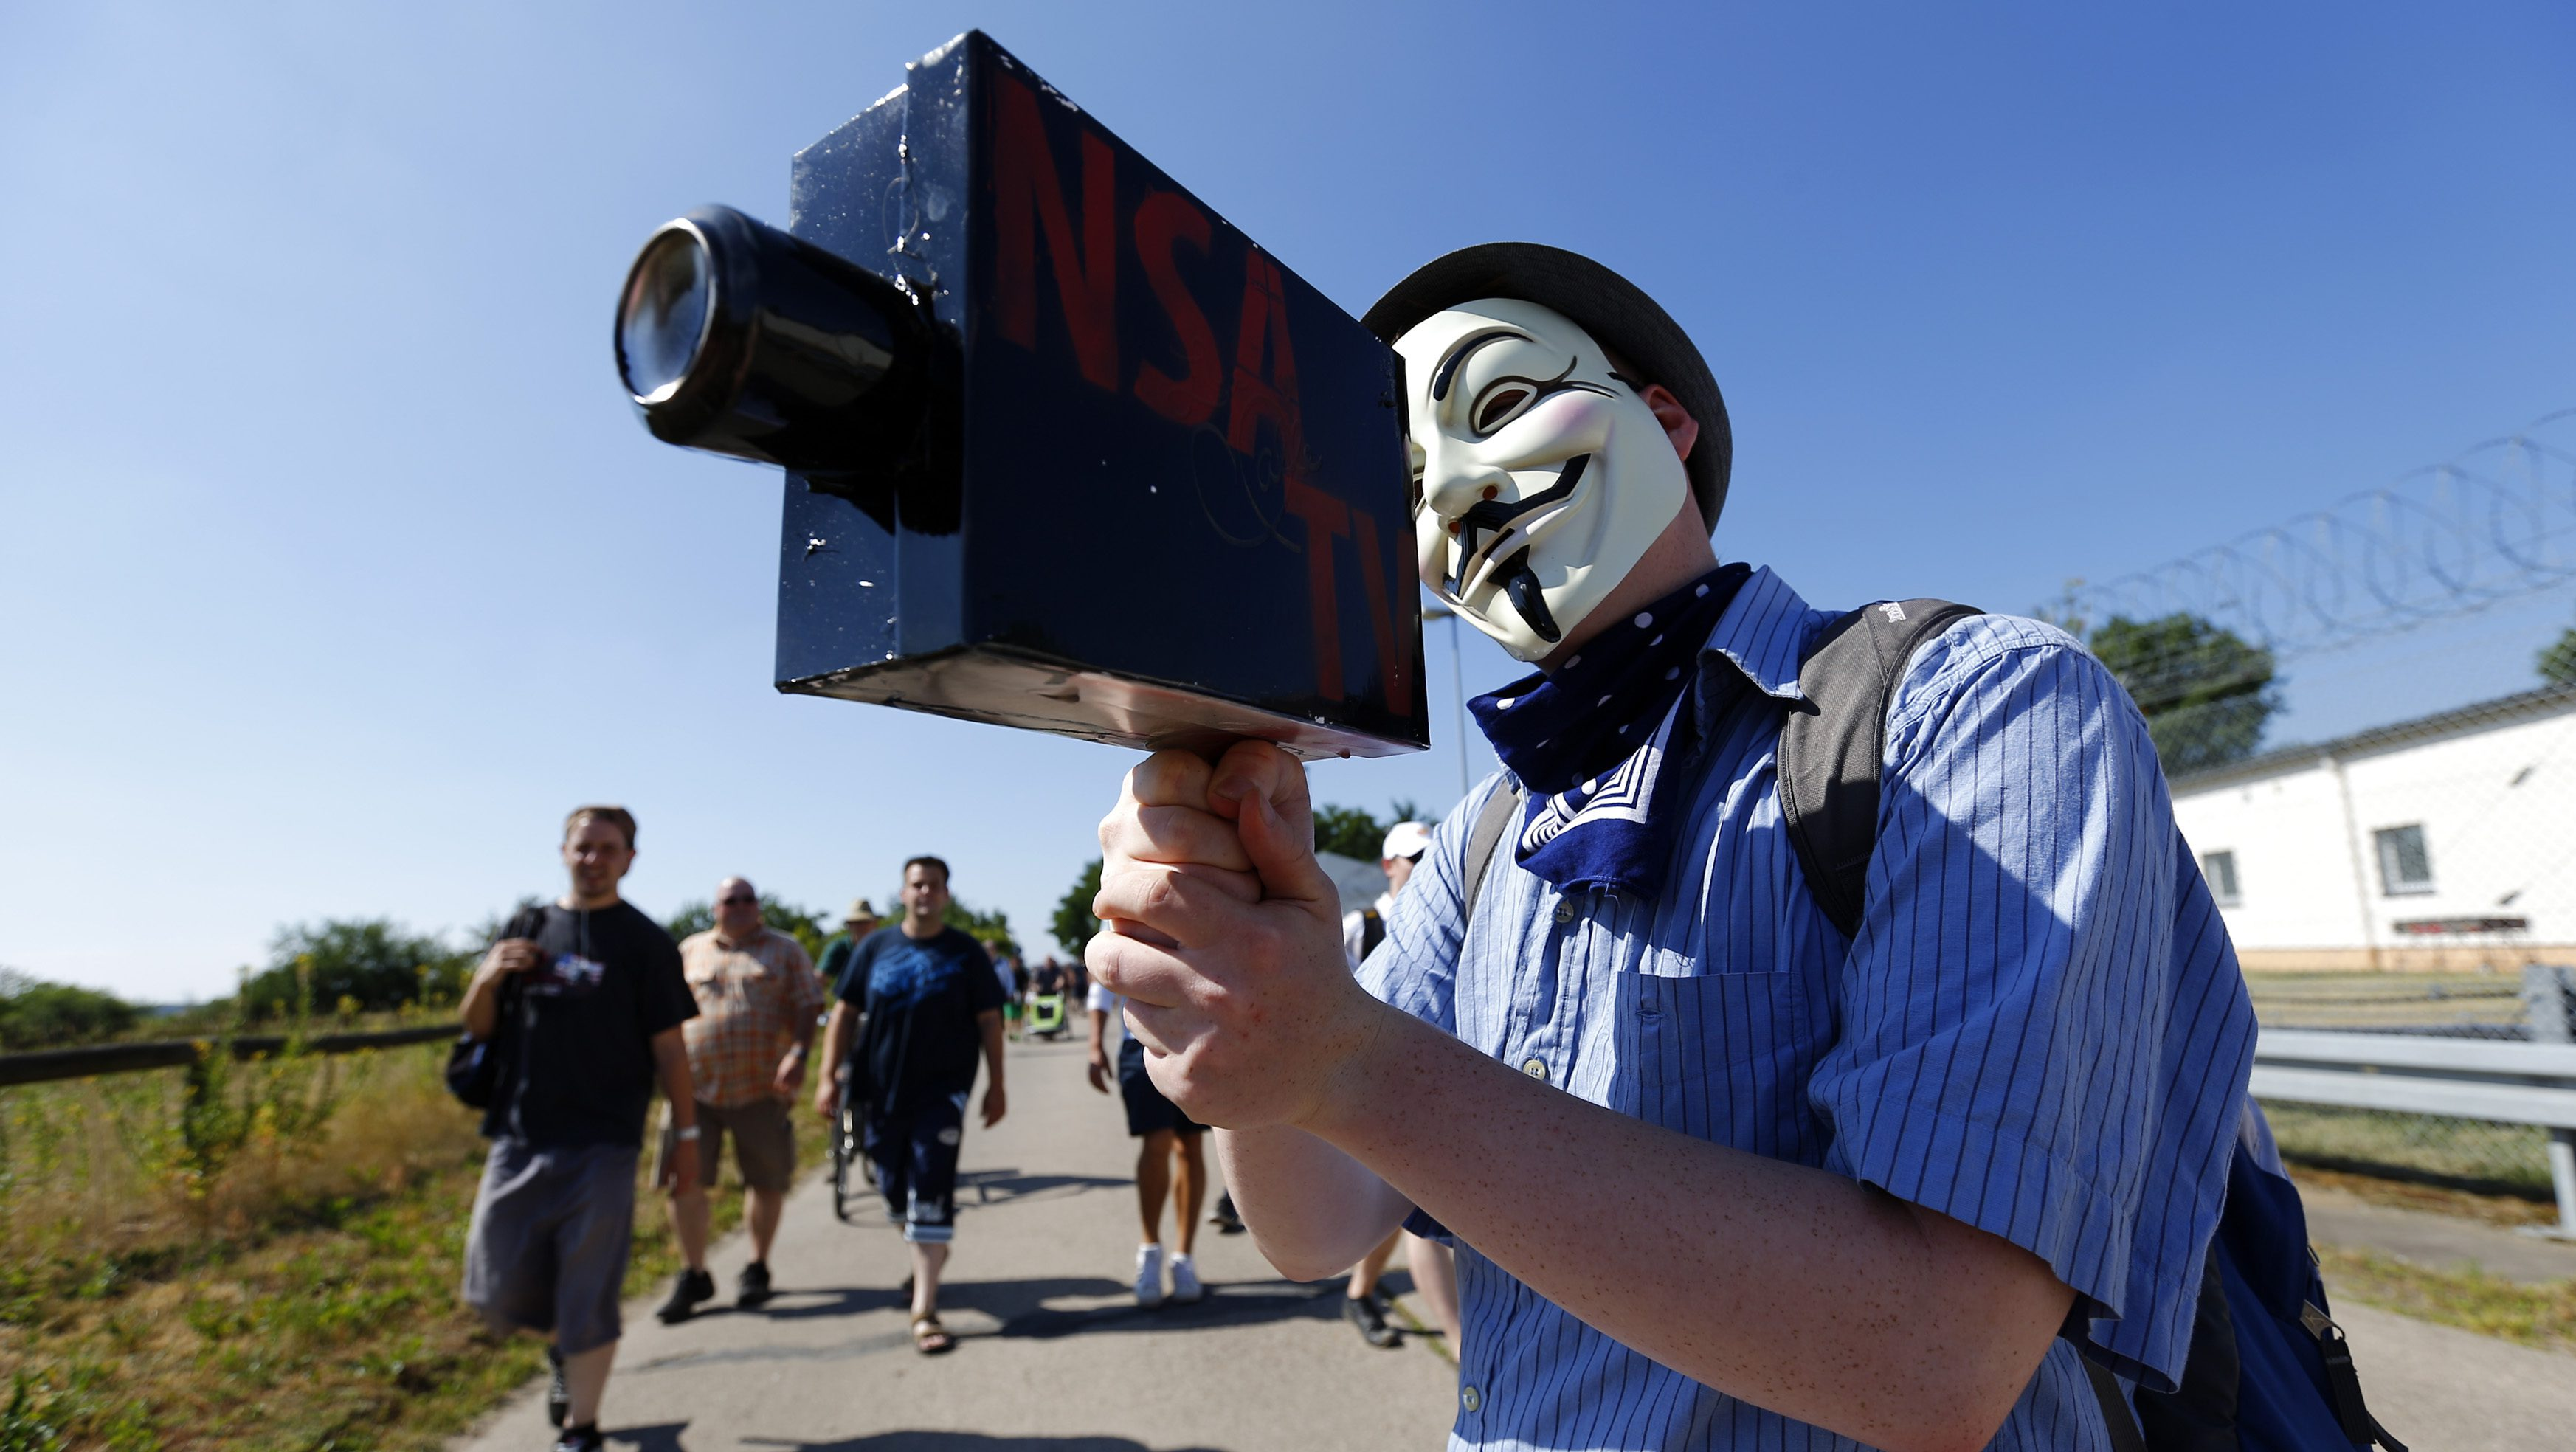 """A protester wearing a Guy Fawkes mask holds a paper-made mock TV camera during a demonstration against the National Security Agency (NSA) and in support of U.S. whistleblower Edward Snowden, outside the """"Dagger Complex"""", which is used by the U.S. Army intelligence services, in Griesheim, 20 km (12.4 miles) south of Frankfurt, July 20, 2013."""